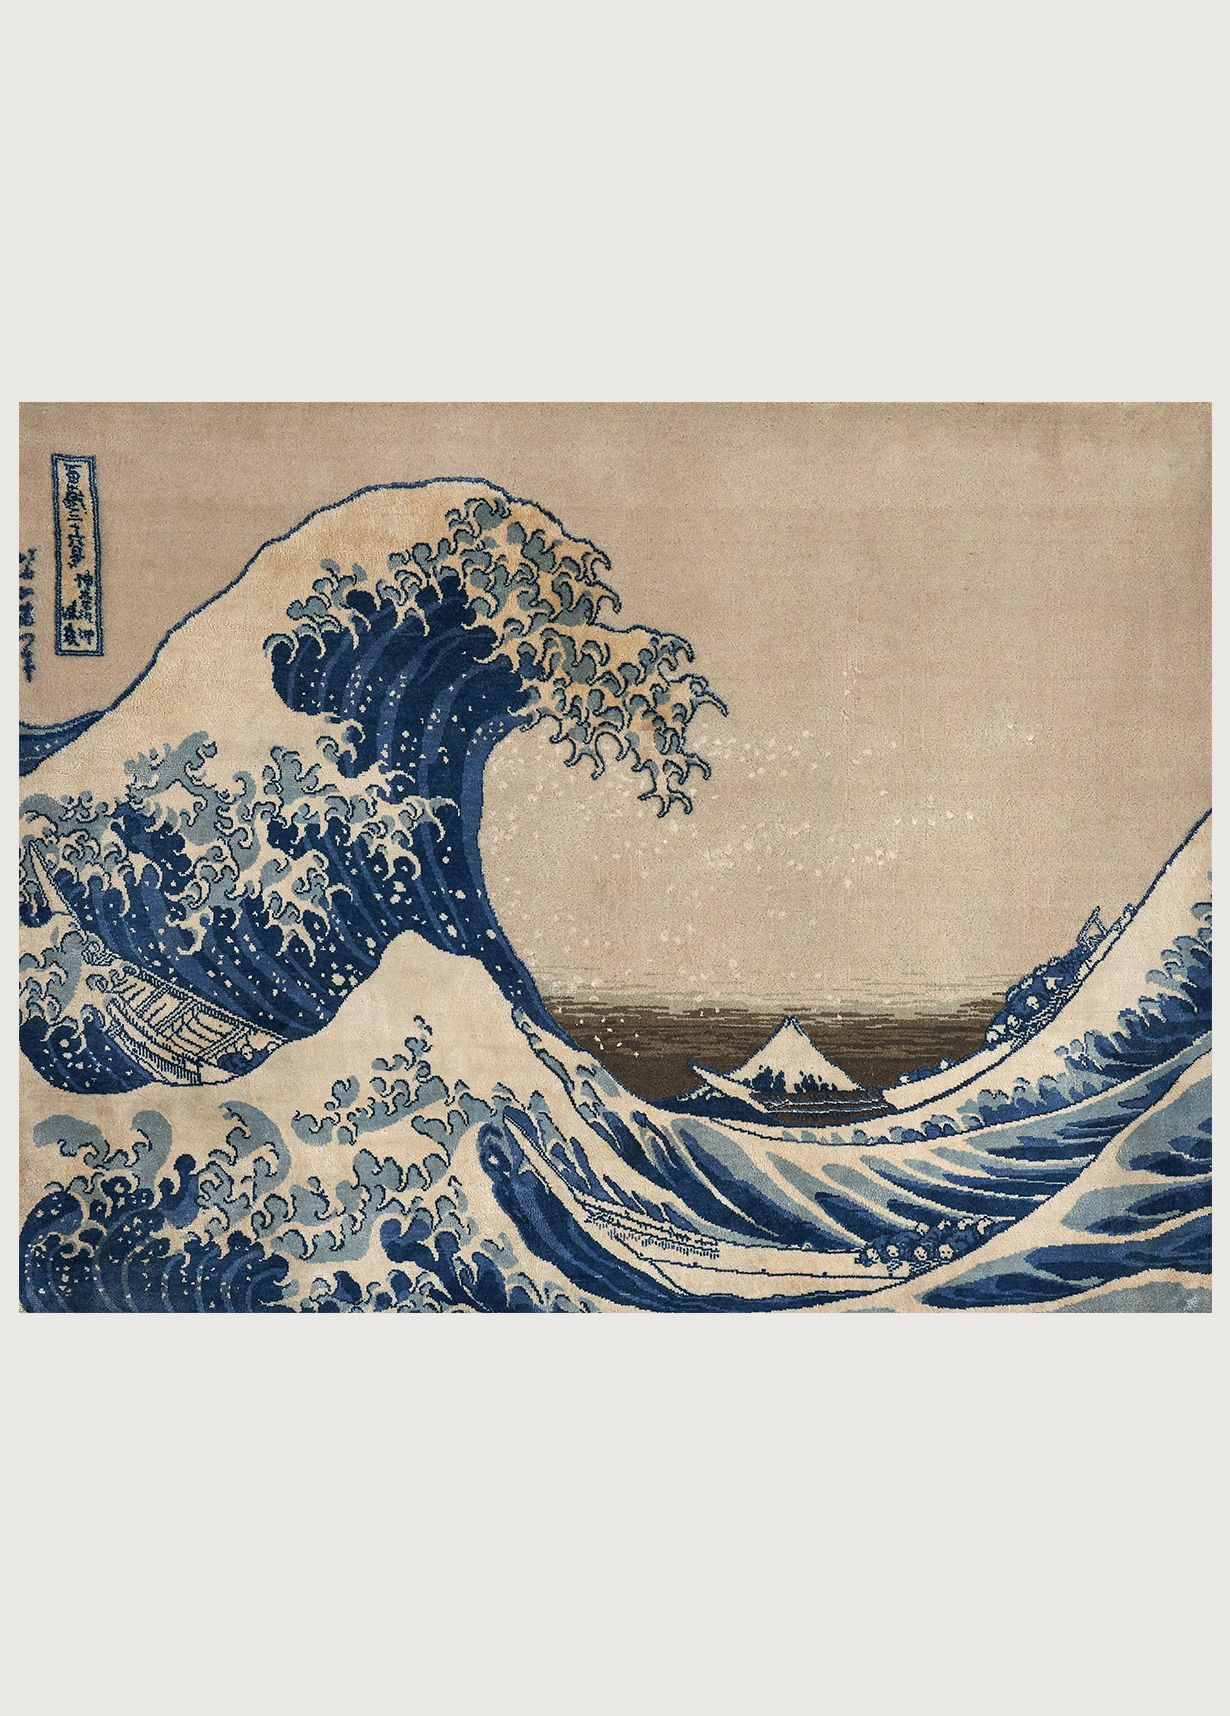 The Great Wave from the British Museum Collection